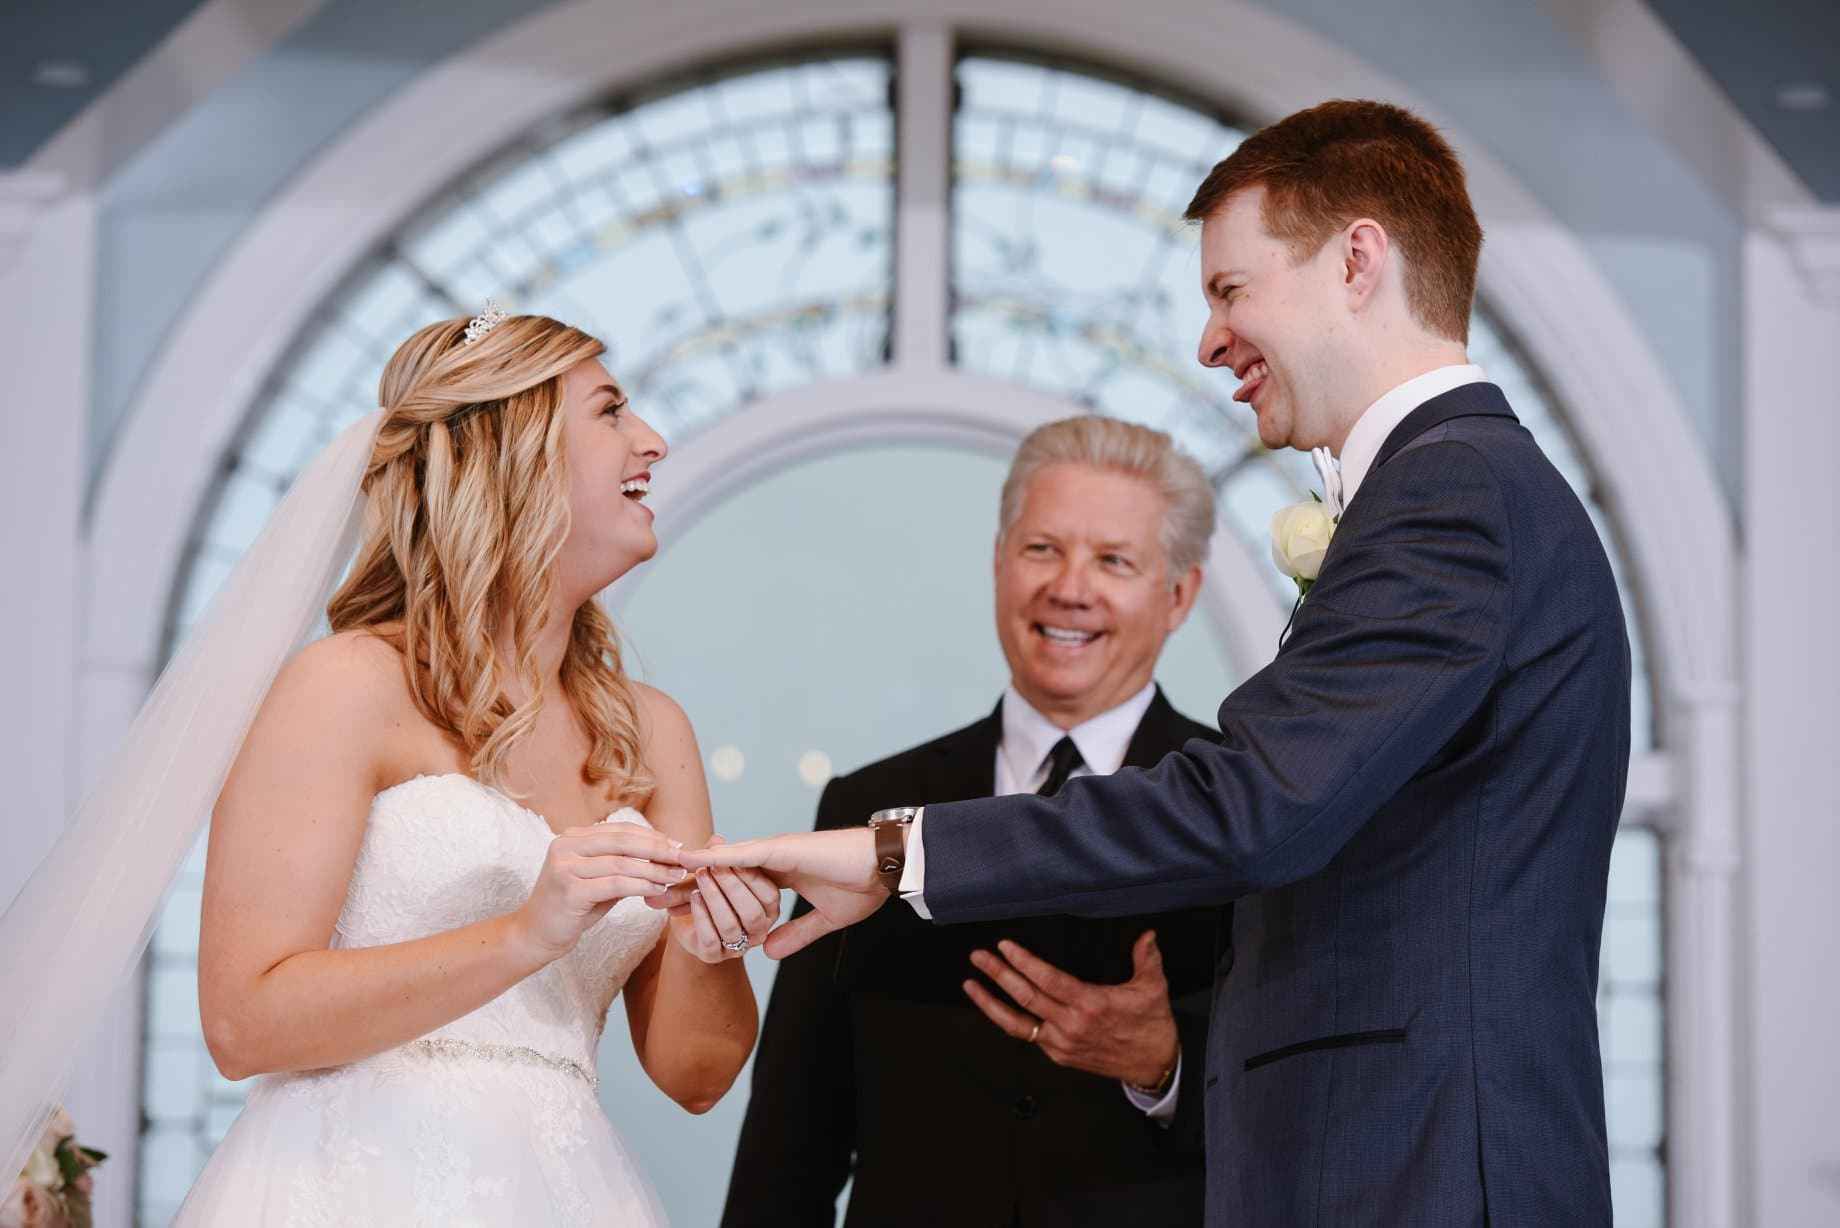 A Beautiful Ceremony - Kevin Knox officiating ceremony as bride and groom laugh